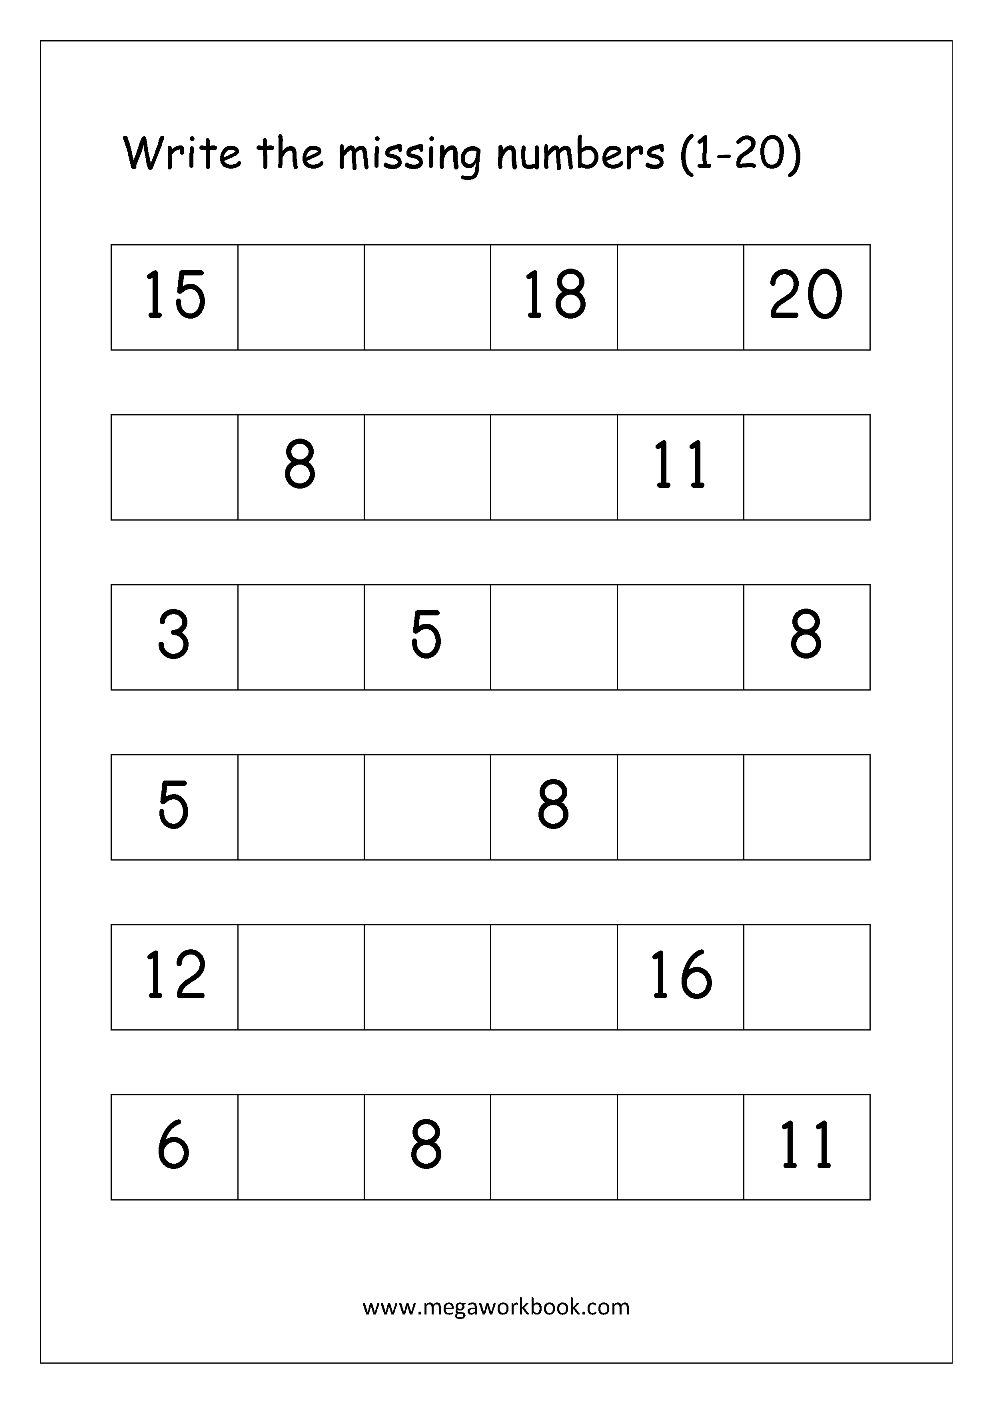 Ordering Numbers Worksheets, Missing Numbers, What Comes Before And | Writing Numbers 1 20 Printable Worksheets